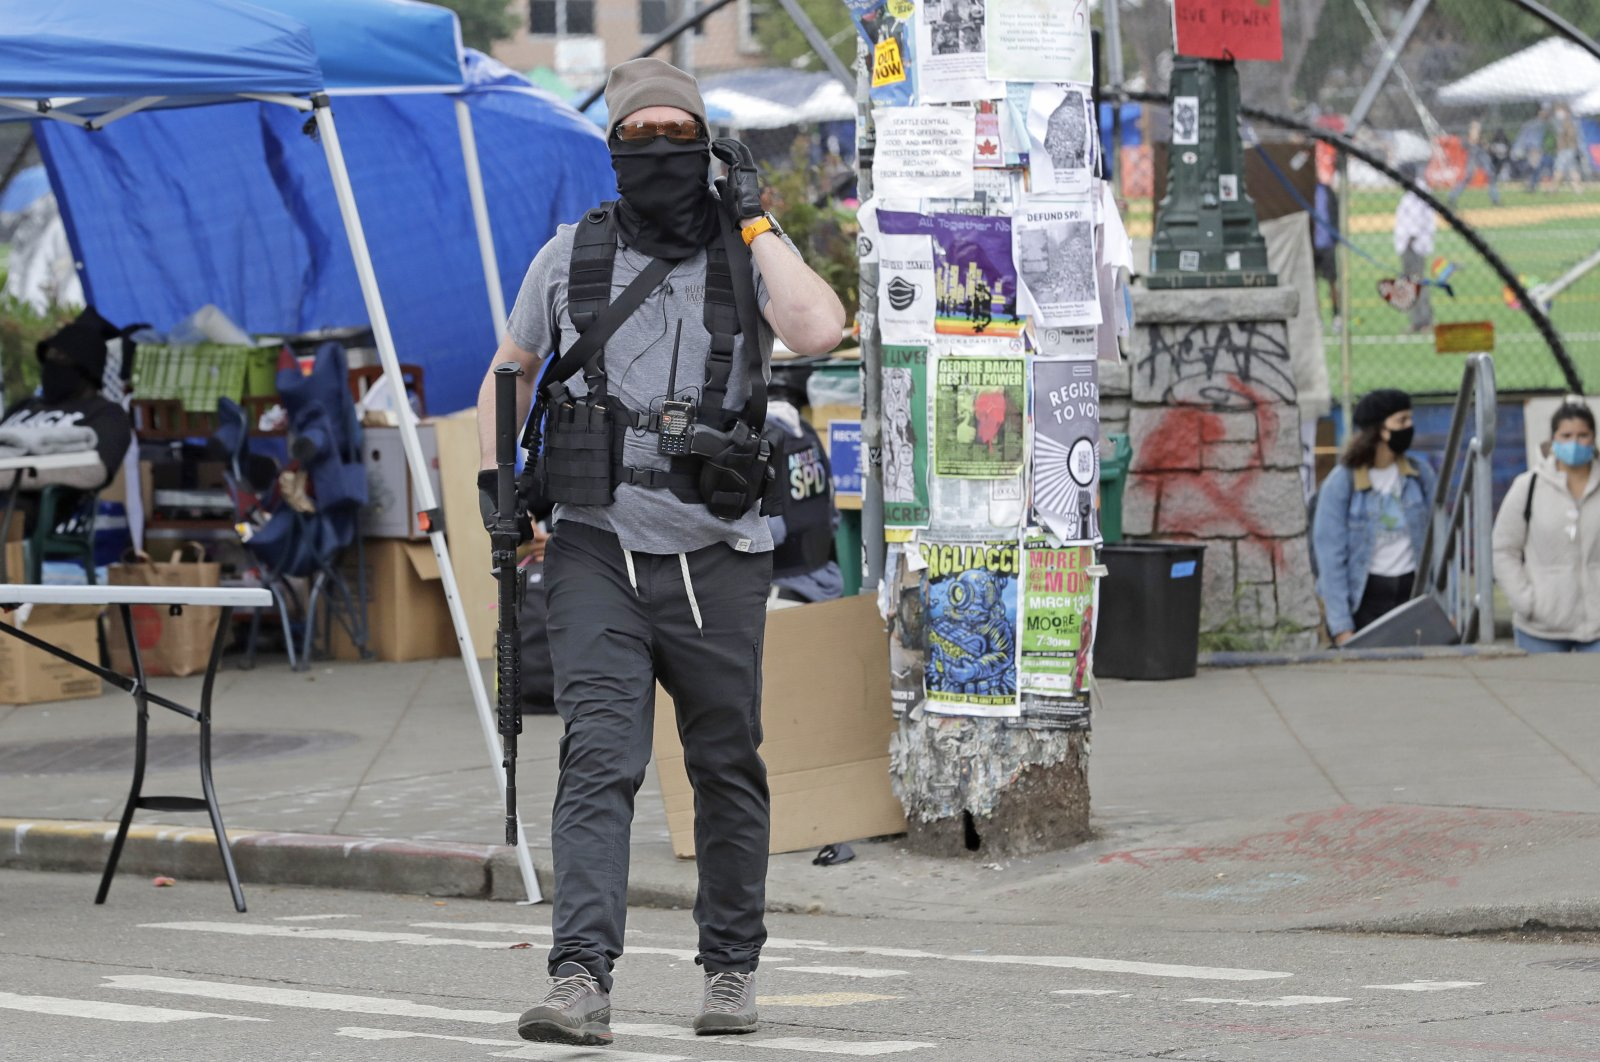 A person carries a rifle as he walks near what has been named the Capitol Hill Occupied Protest (CHOP) zone, Seattle, June 20, 2020